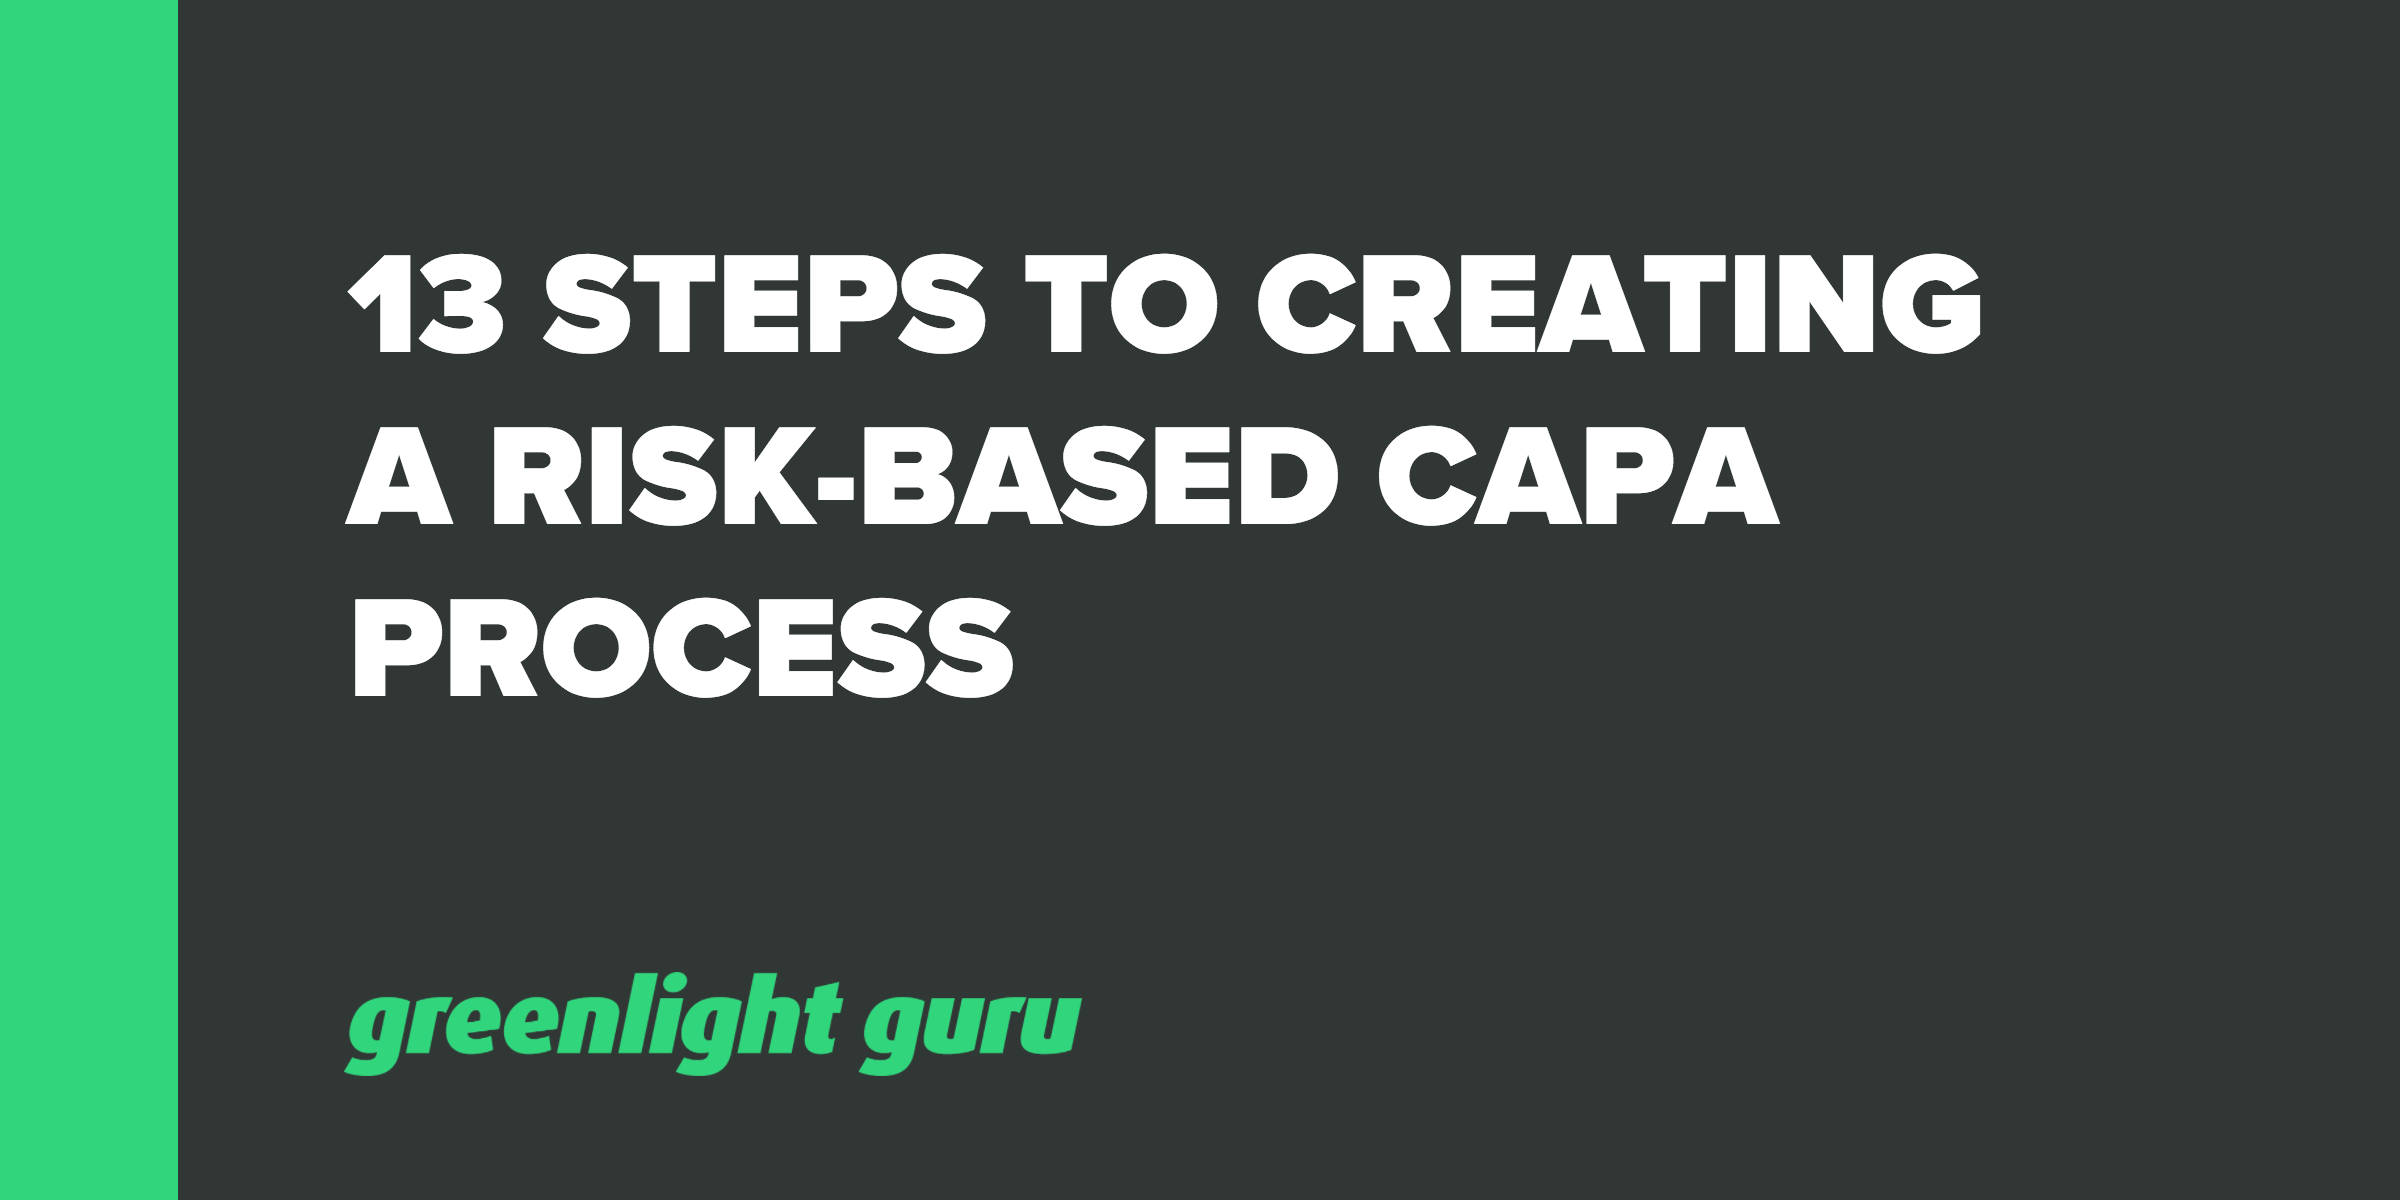 13 Steps to Creating a Risk-Based CAPA Process - Featured Image